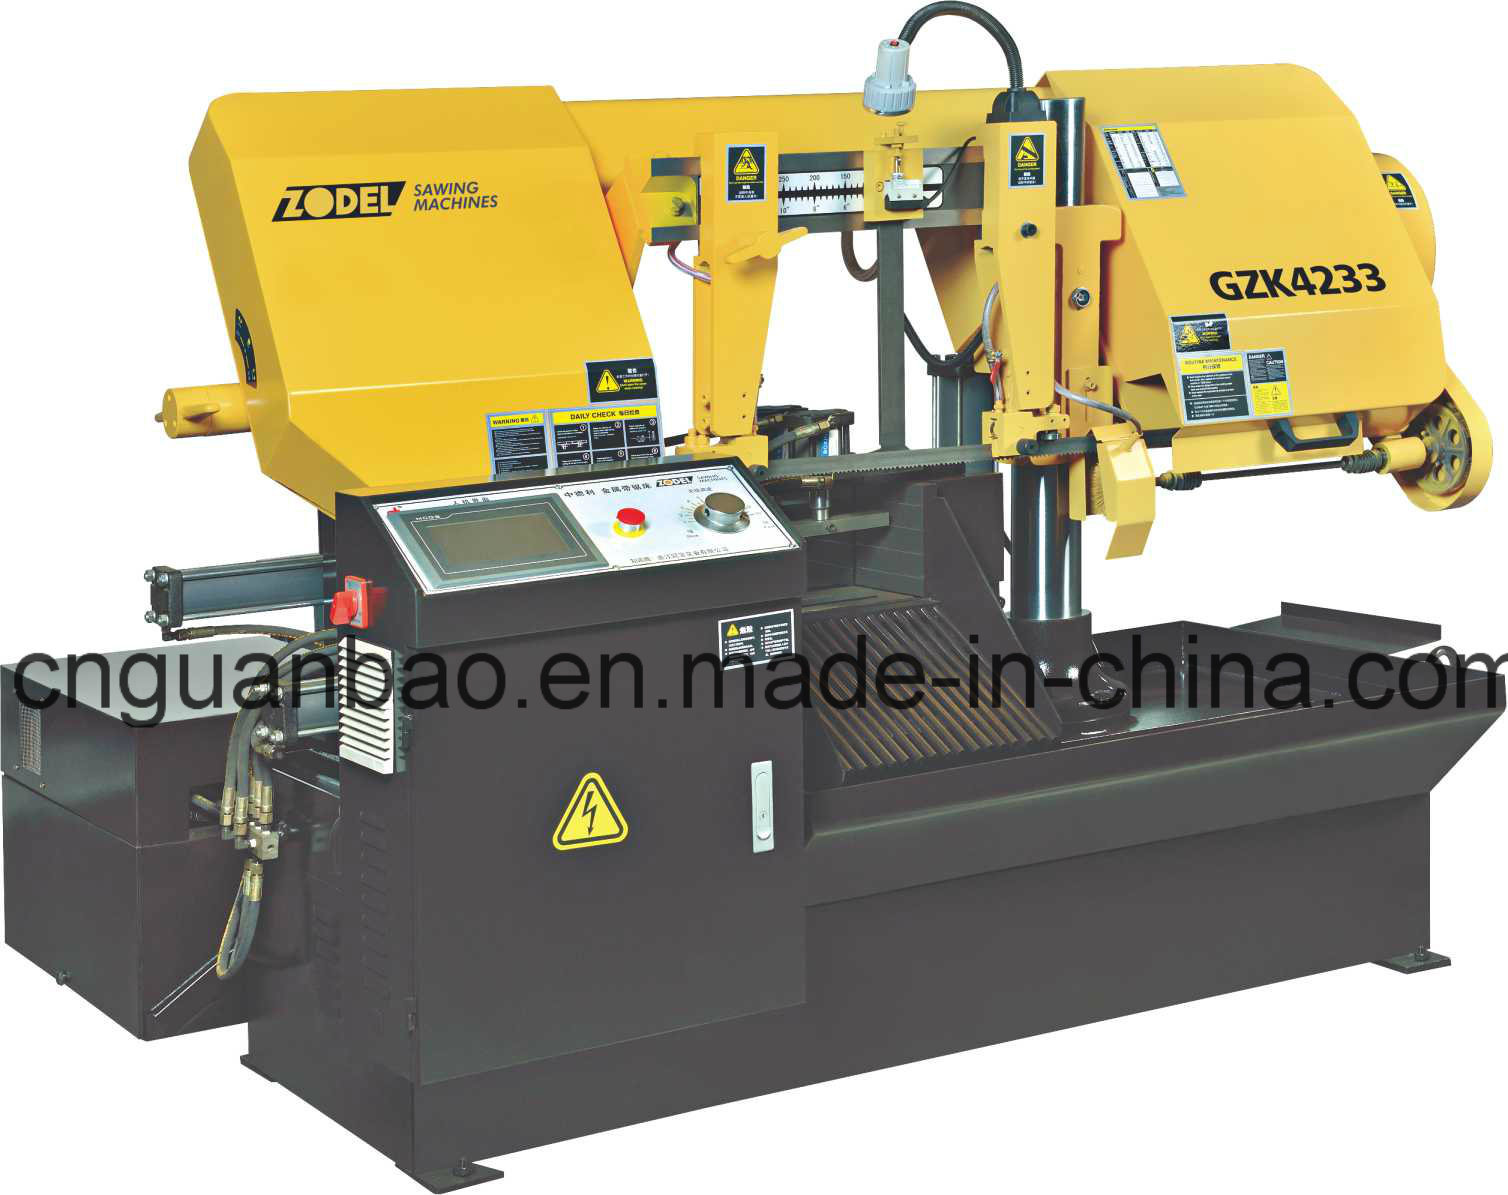 CNC Band Saw Machine Gzk4233 with ISO CE Certificate pictures & photos